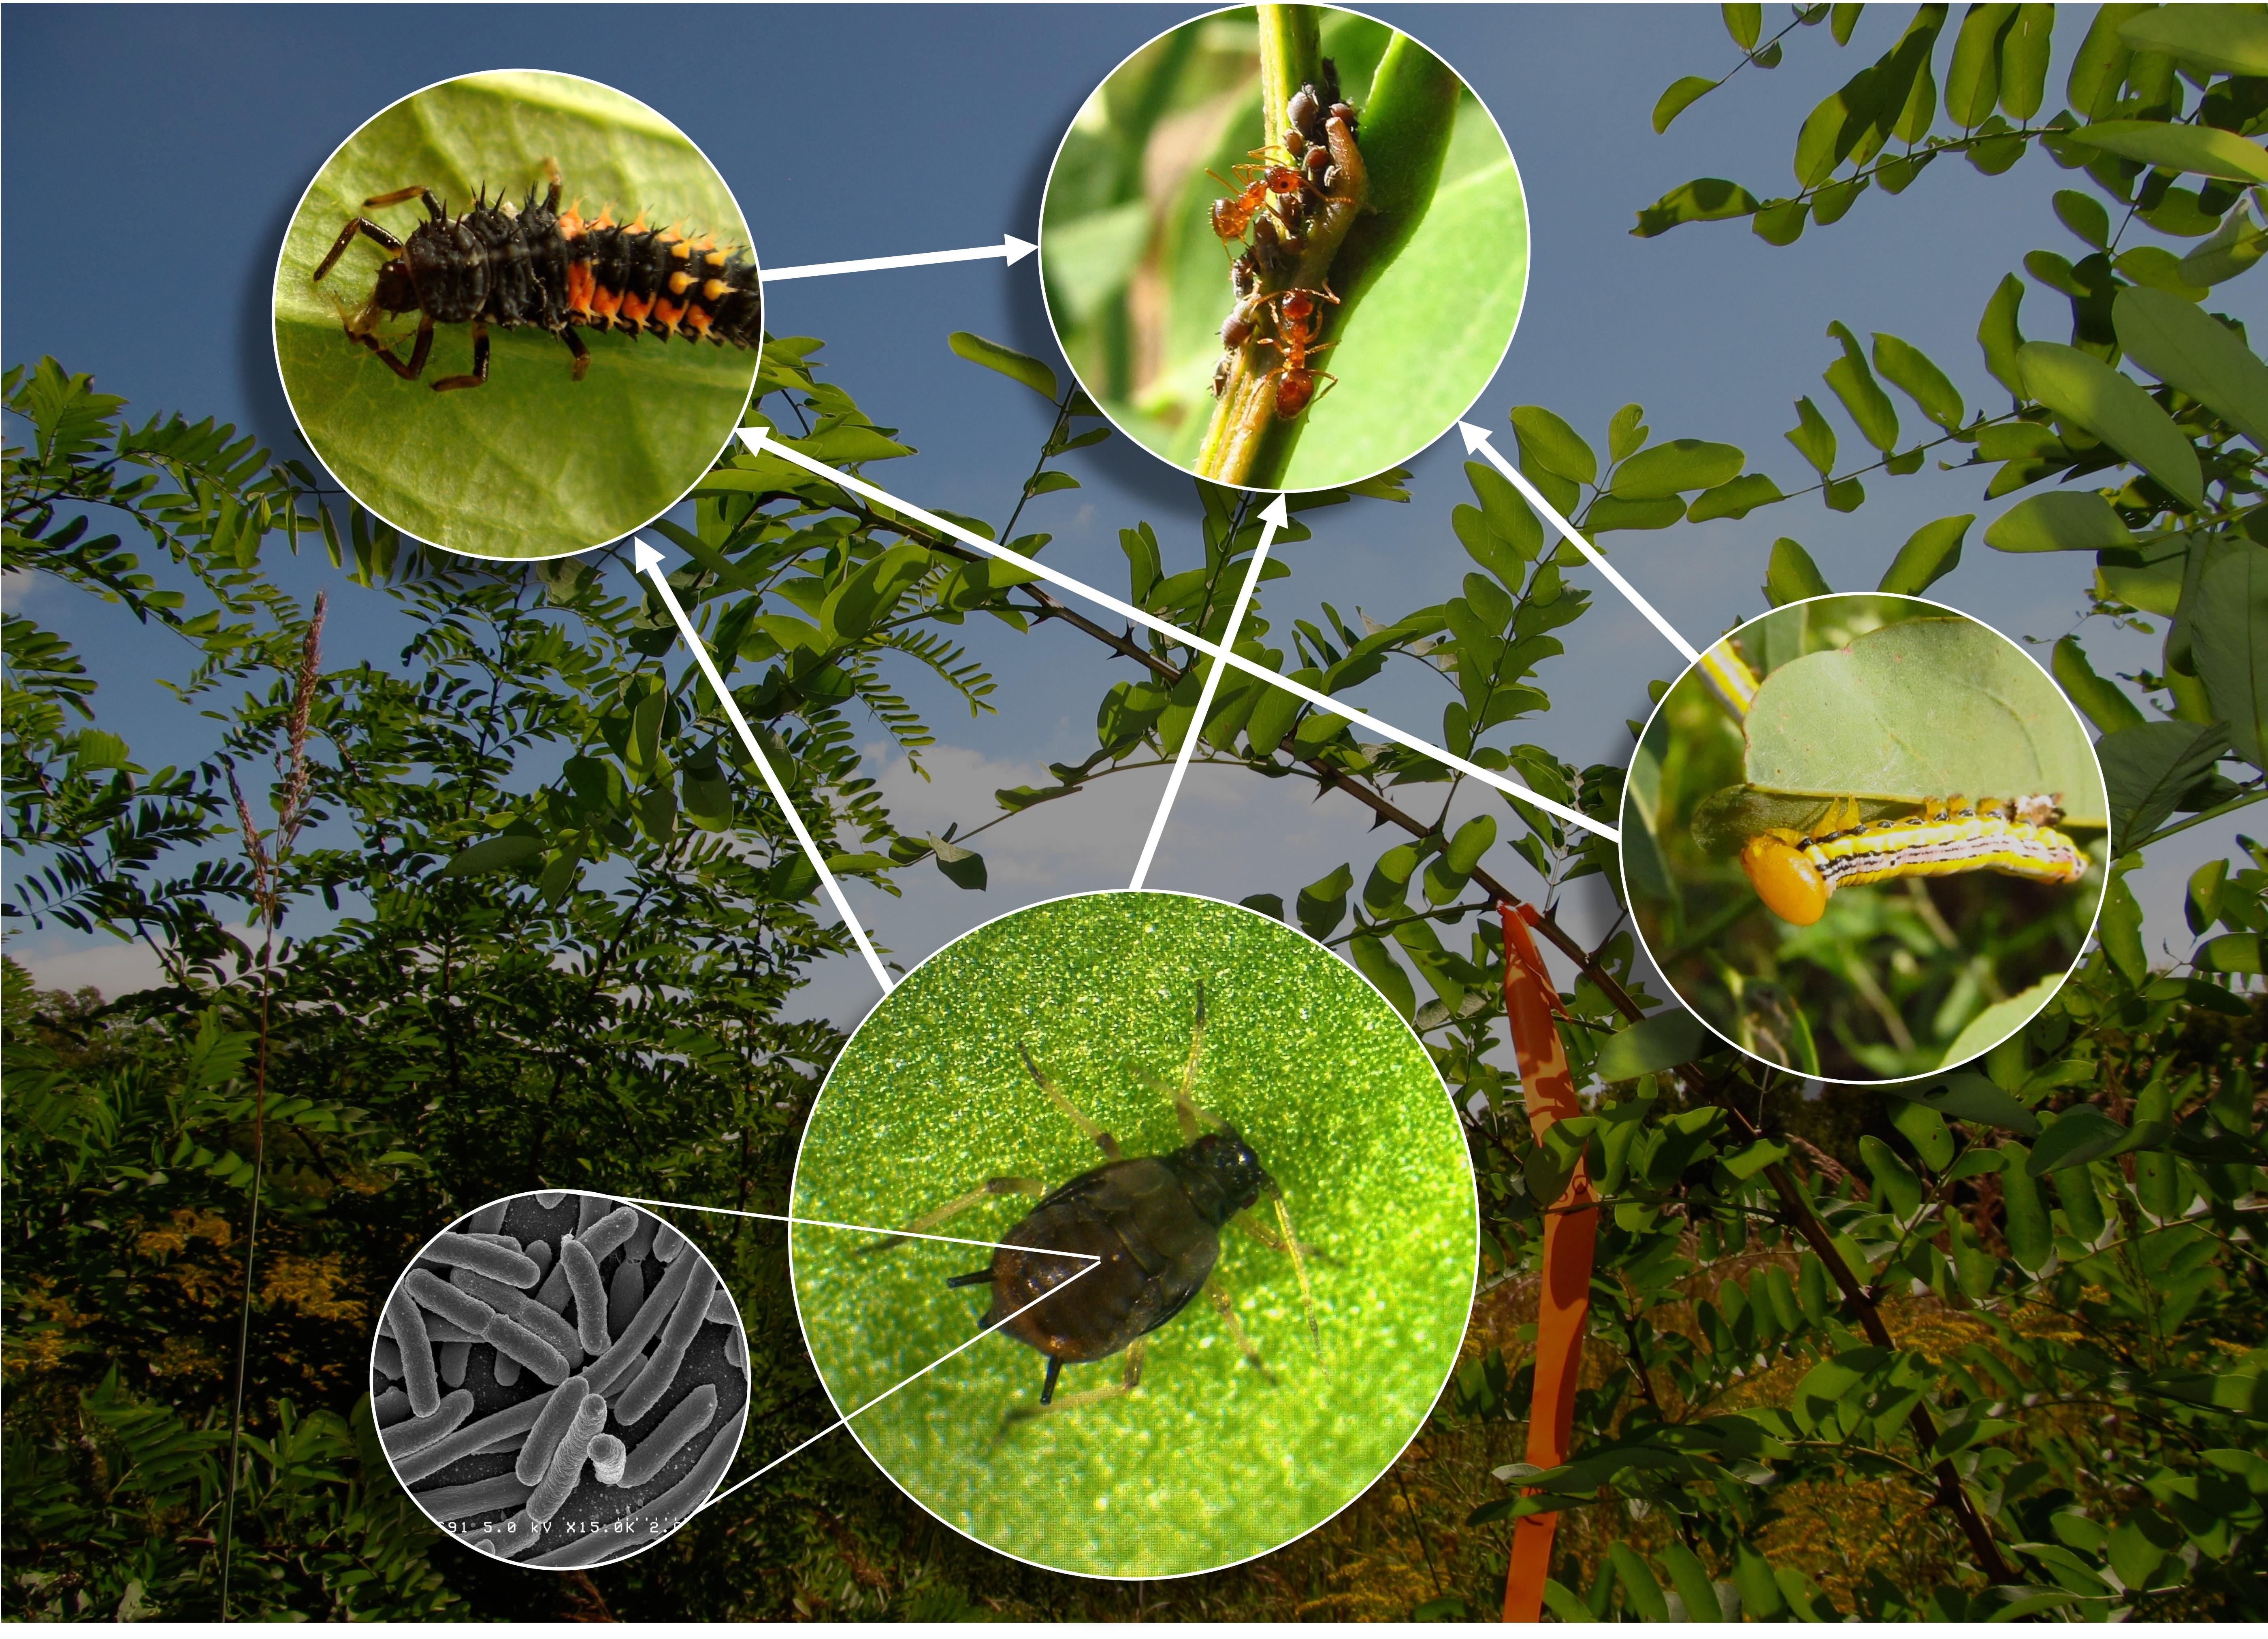 Cowpea aphid system